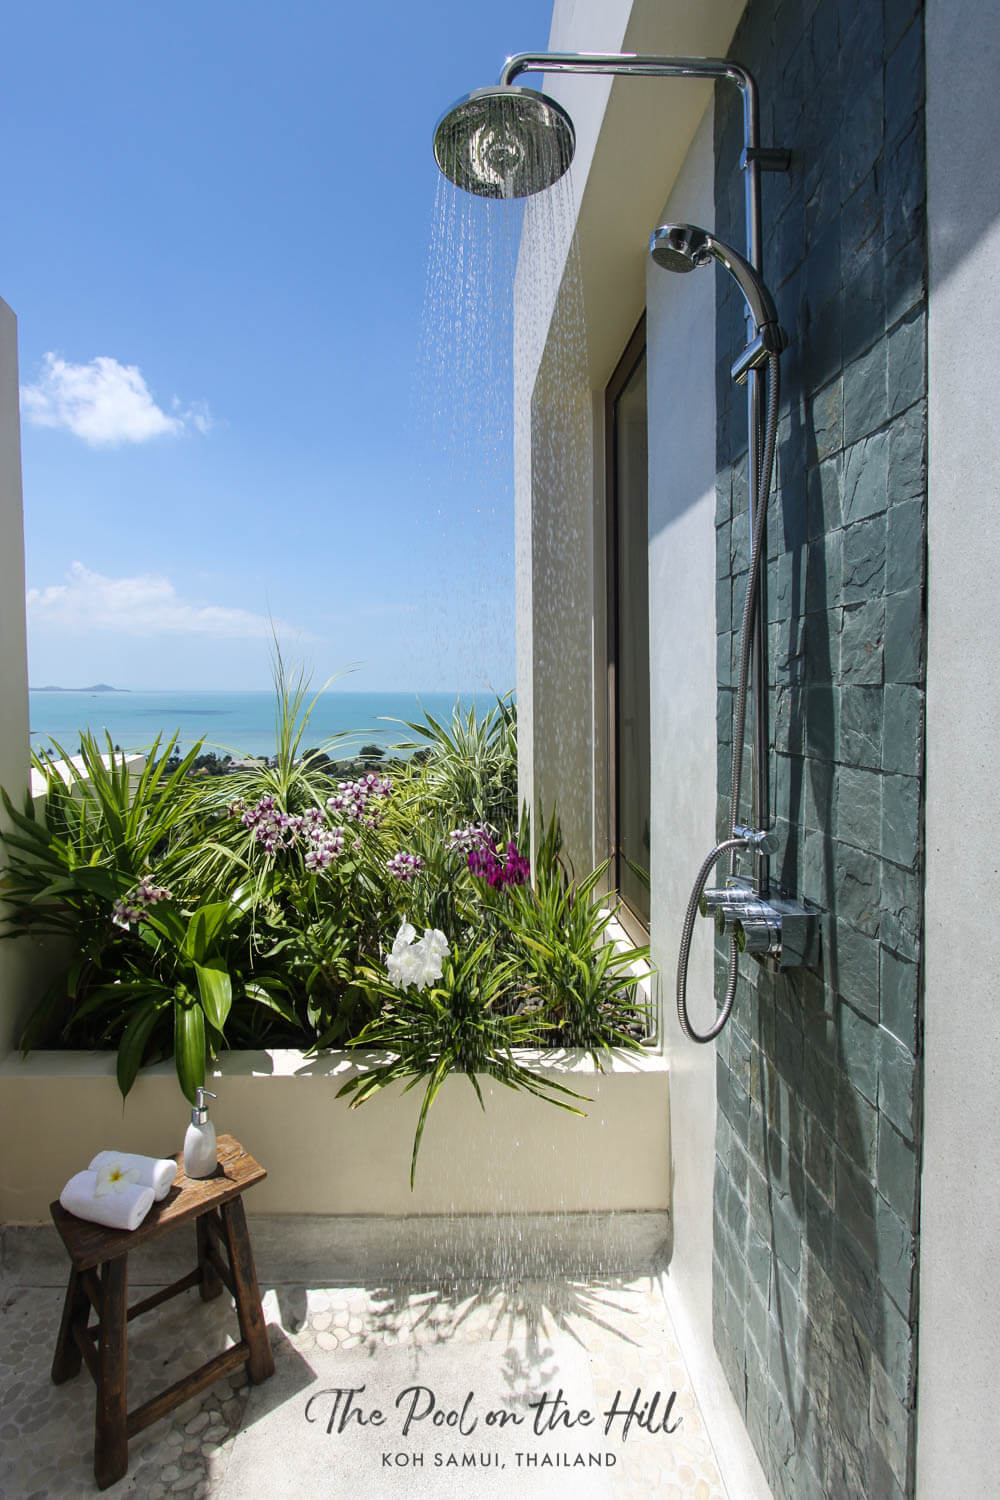 Koh Samui pool villa: The master bedroom's oceanview outdoor shower at The Pool on the Hill, near Choeng Mon Beach in Koh Samui, Thailand | #kohsamui #thailand #samui #travel #privatevilla